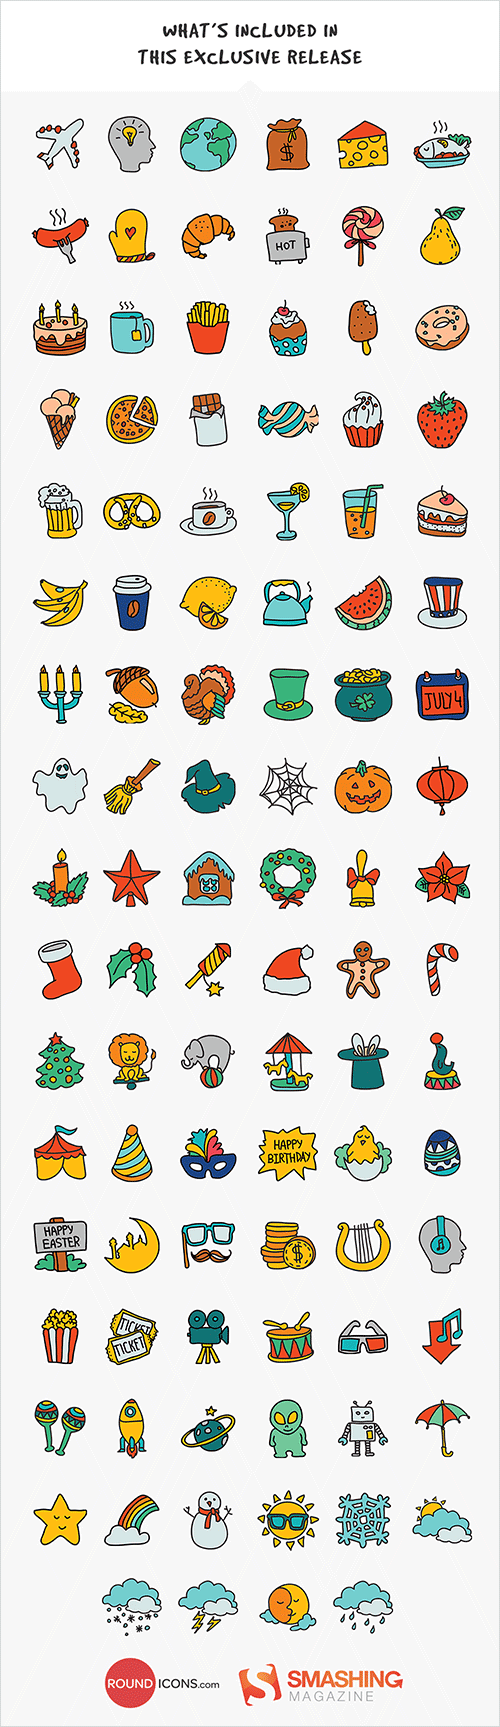 Free Hand-Drawn Doodle Icon Set (100 Icons, PNG, PSD, SVG)